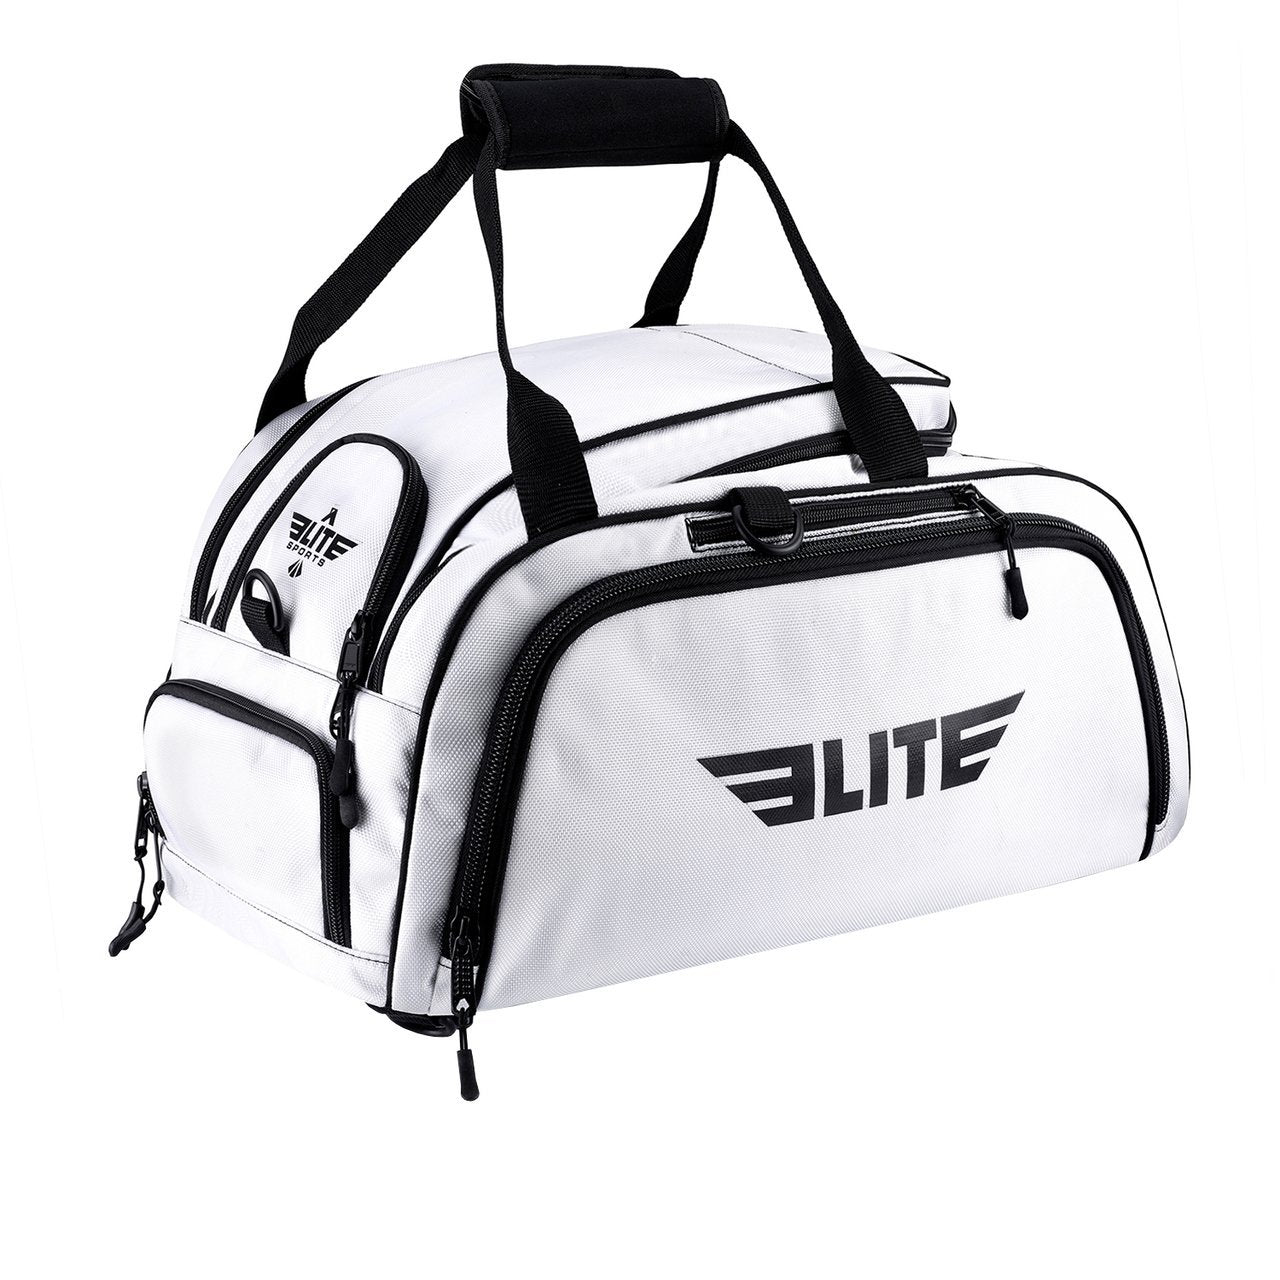 Load image into Gallery viewer, Elite Sports Warrior Series White Medium Duffel Karate Gear Gym Bag & Backpack